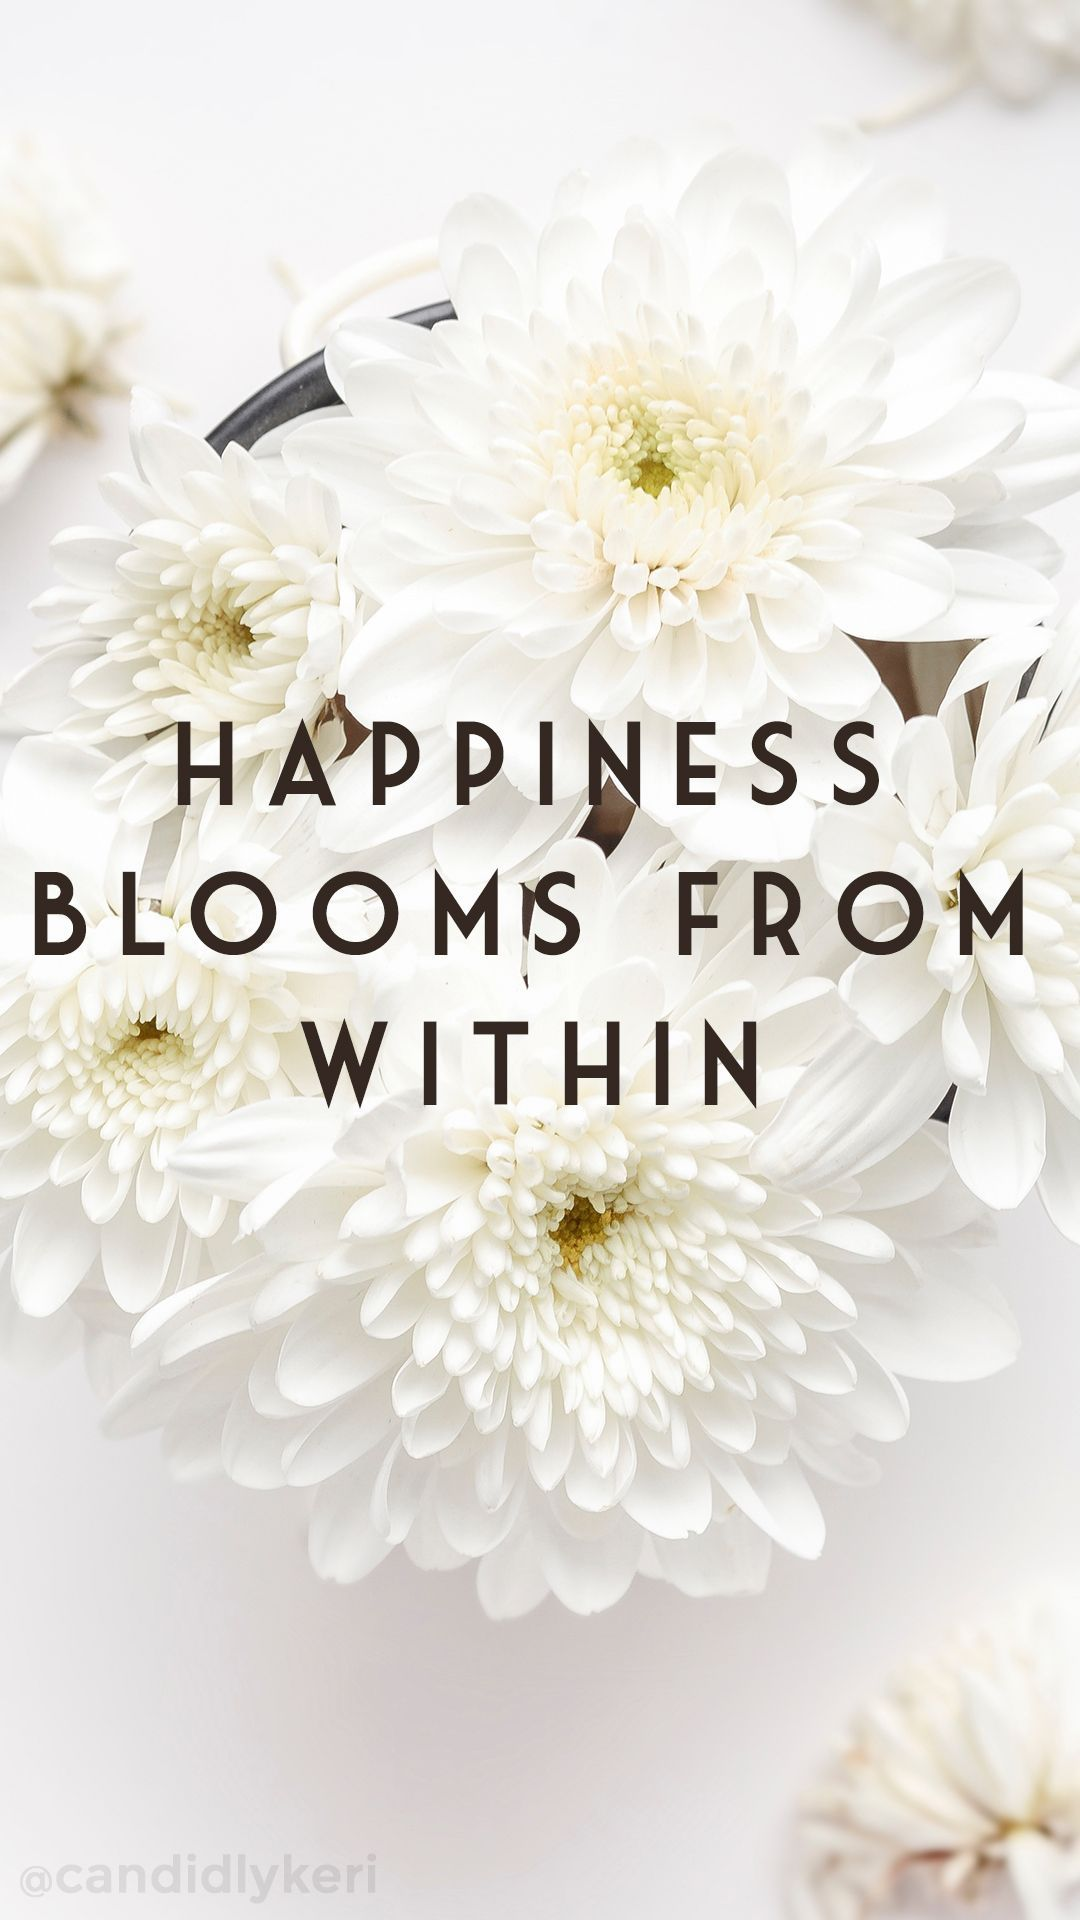 Flower Quote Iphone Wallpapers Top Free Flower Quote Iphone